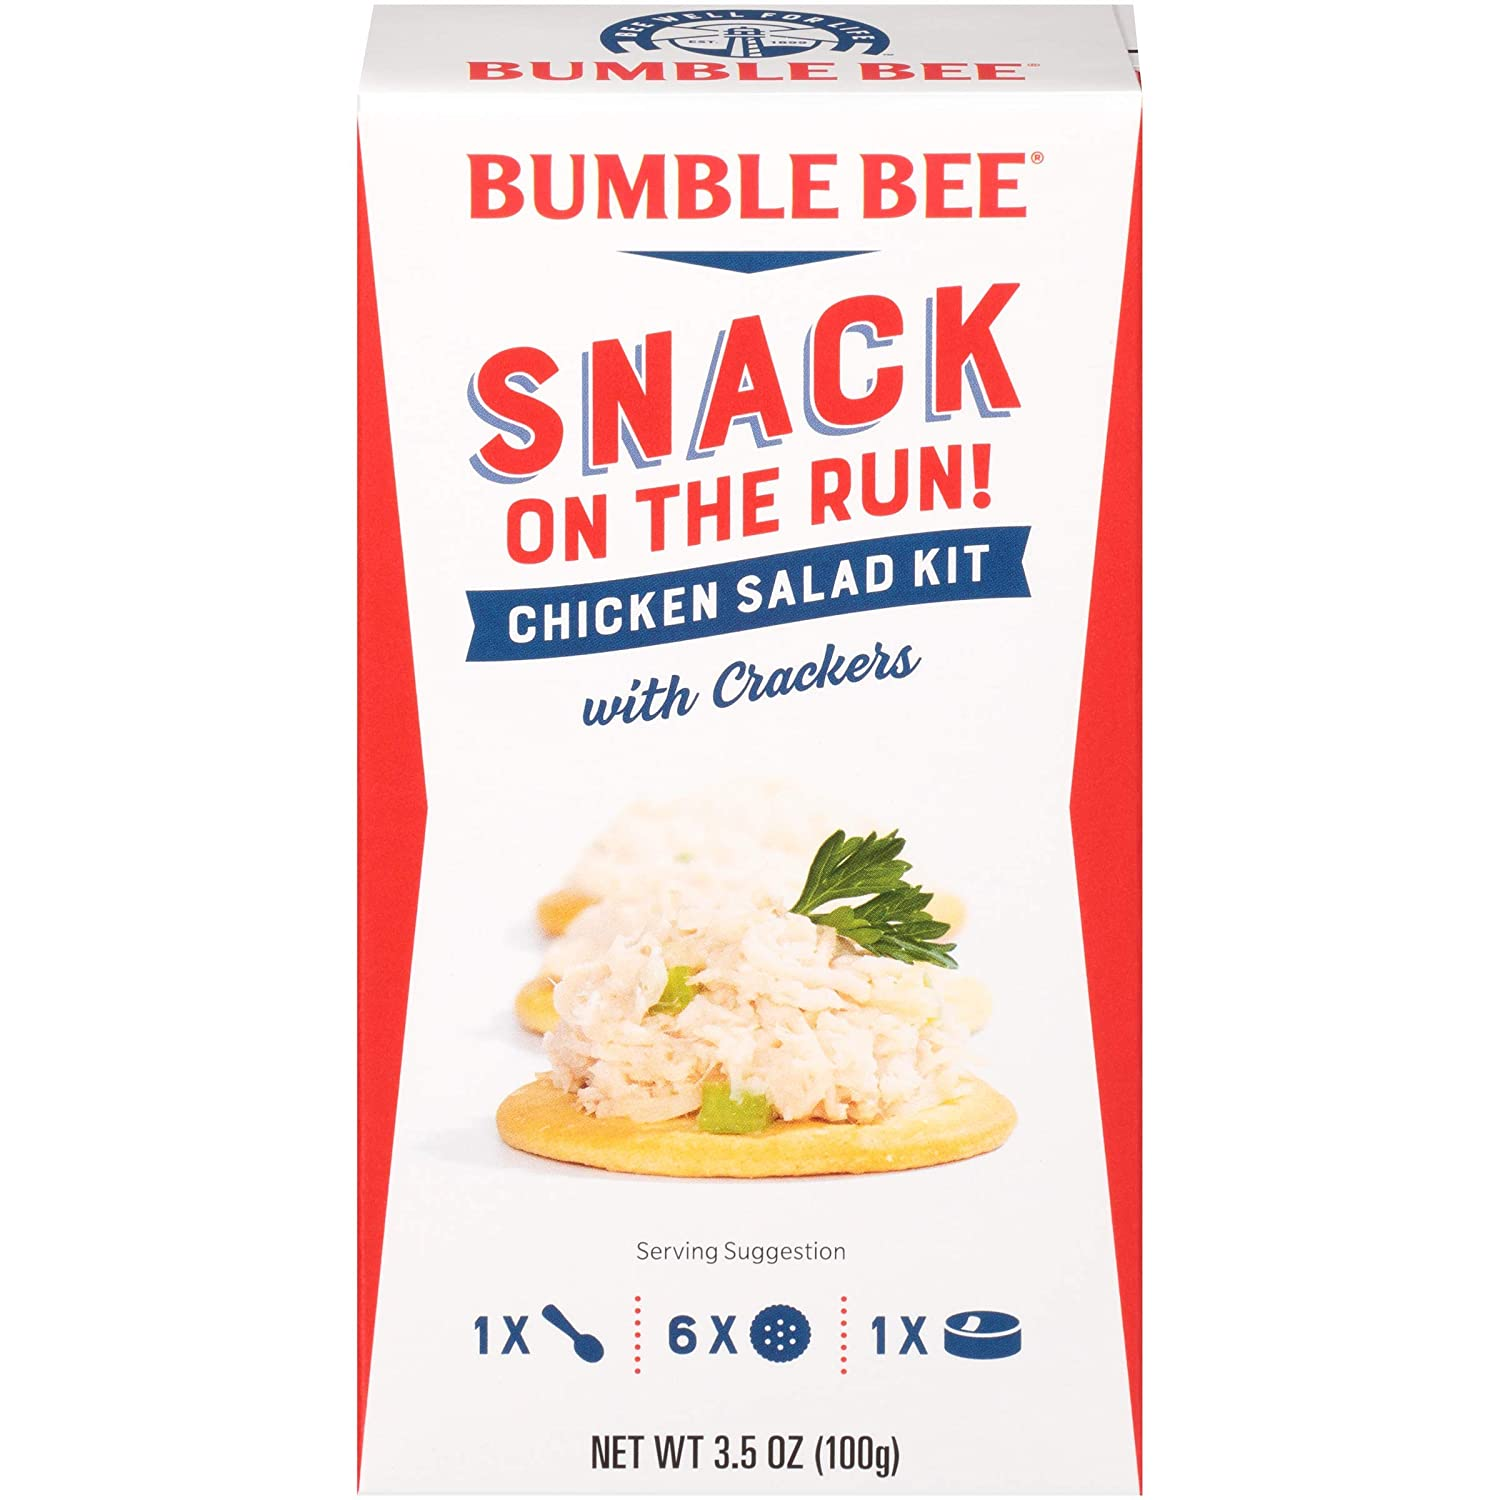 BUMBLE BEE Snack on the Run! Chicken Salad with Crackers Kit, 3.5 Ounce Kit (Pack of 12), High Protein Snack Food, Canned Chicken, Made with Chicken Breast, Healthy Snacks for Adults